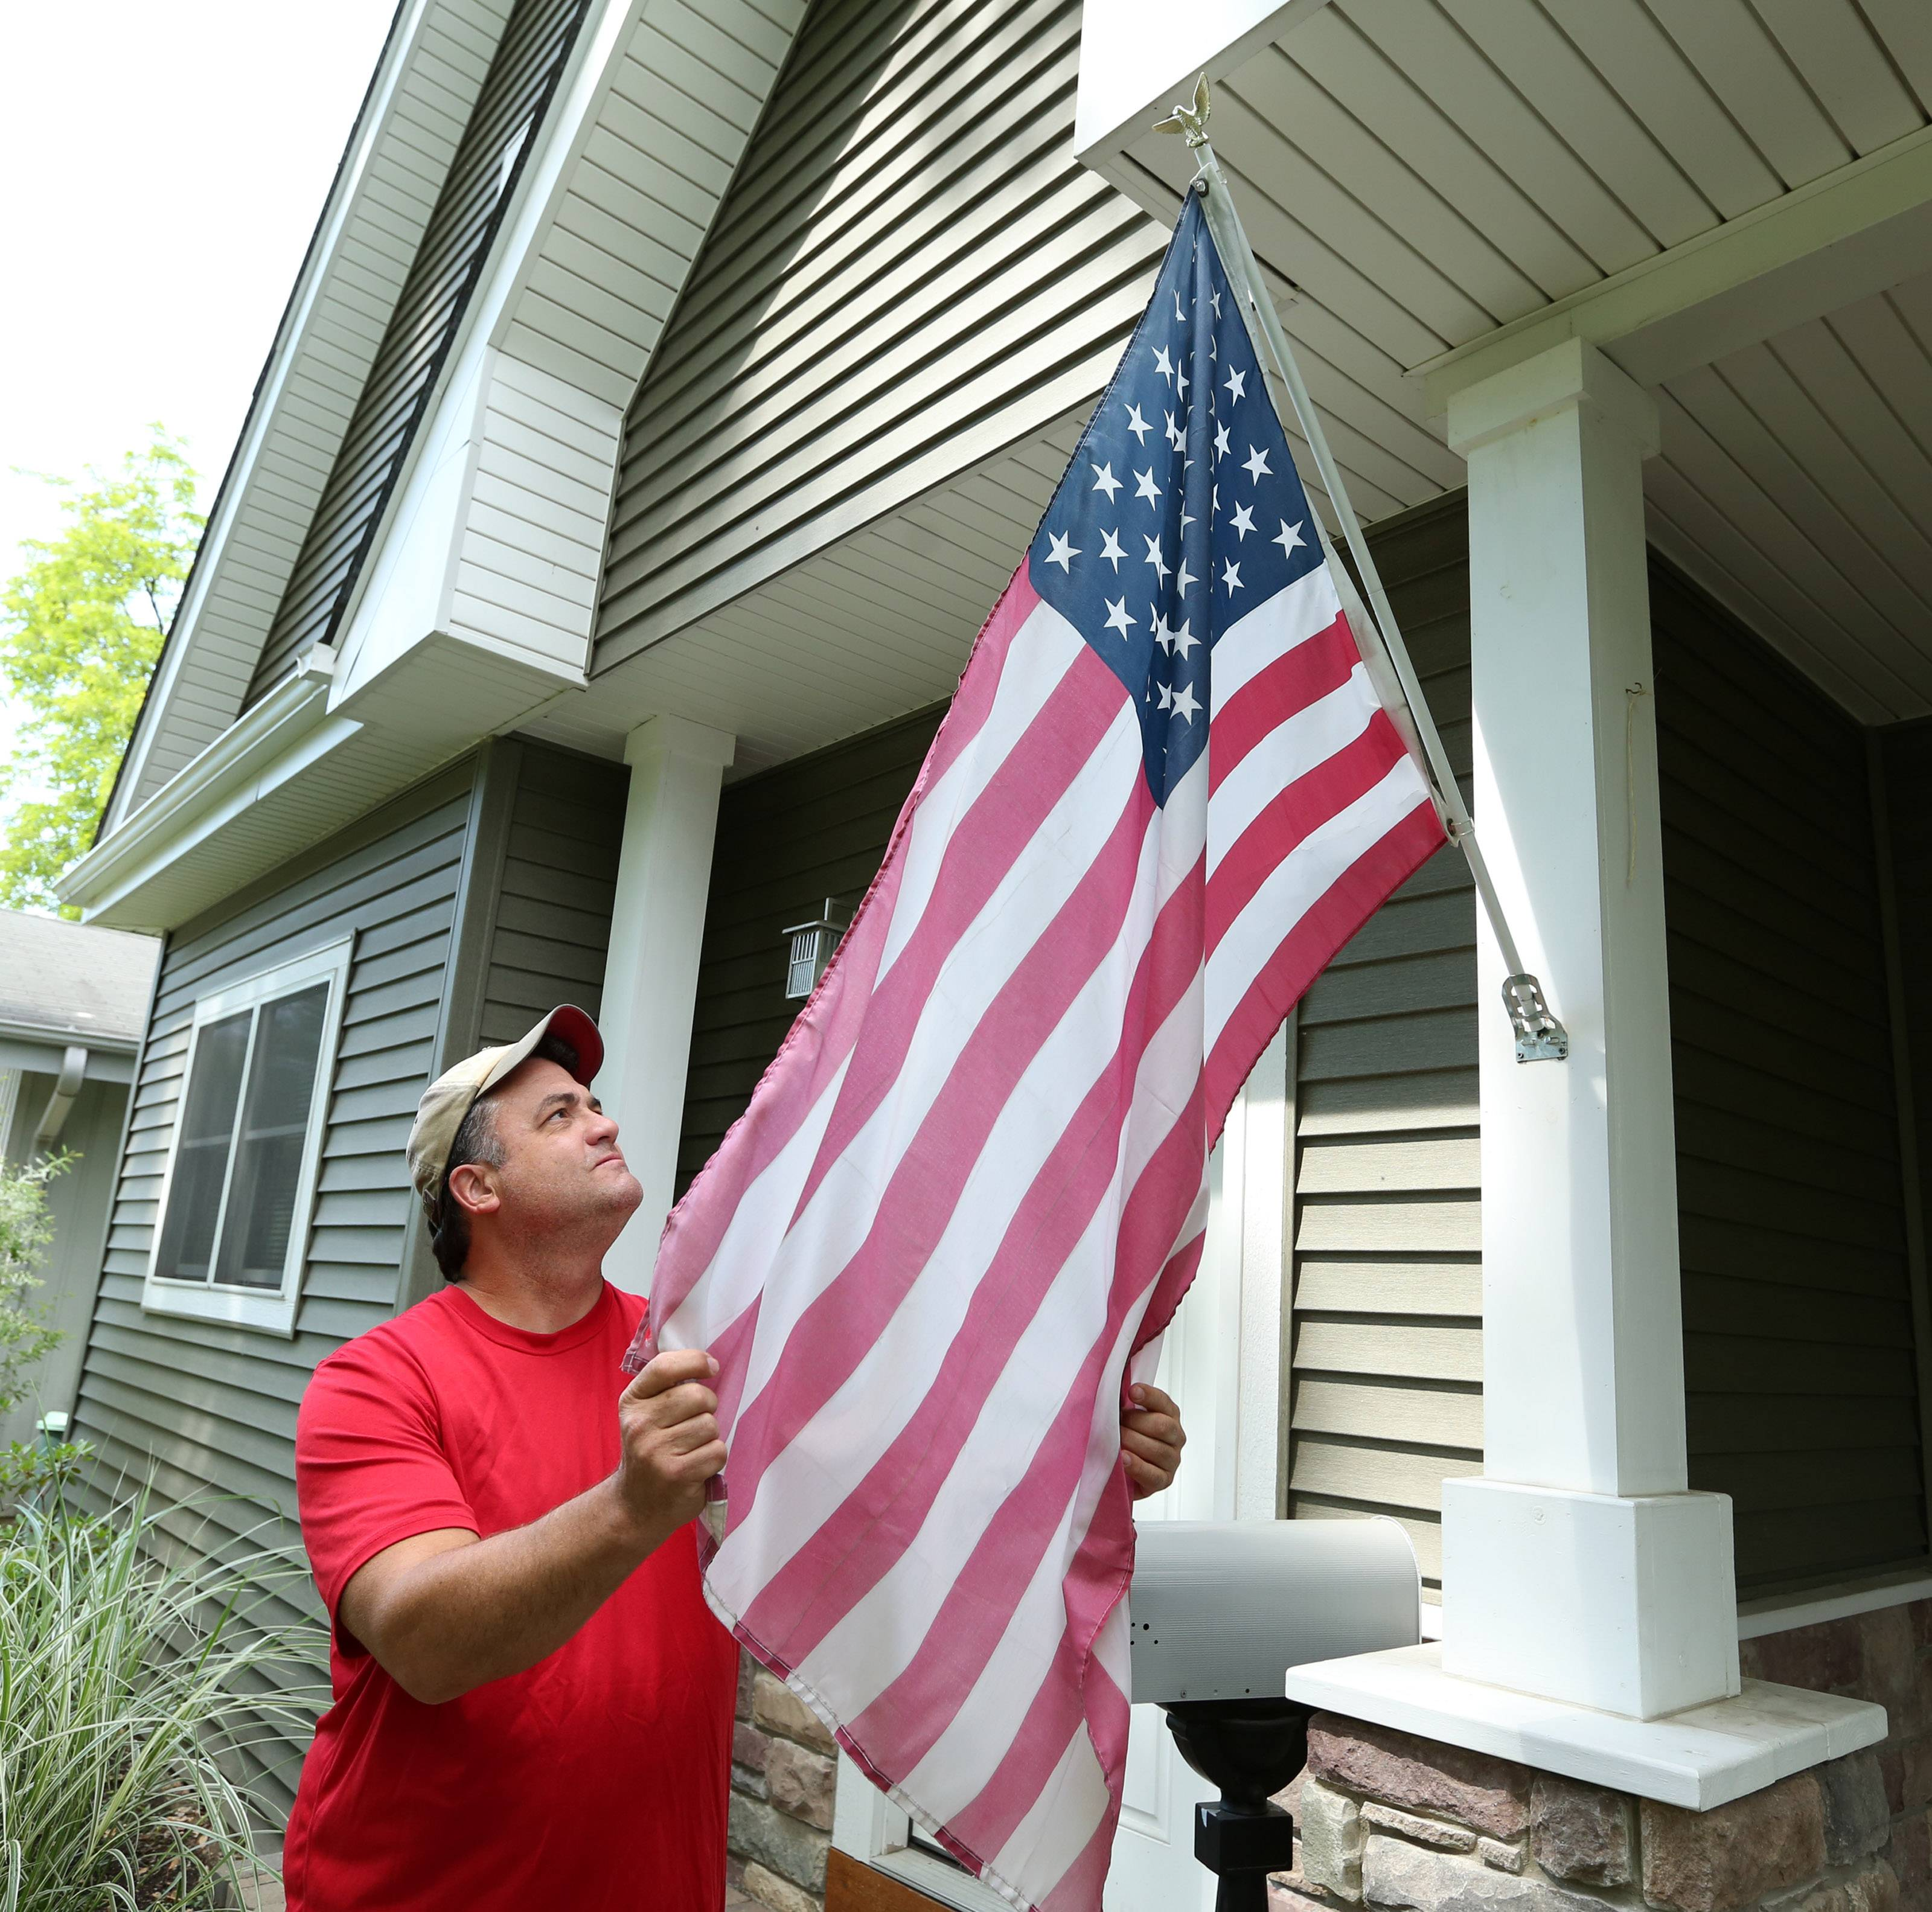 Todd Donoho with his family's American flag in Mount Prospect. Donoho's grandfather served in World War II and his uncle served in Vietnam.